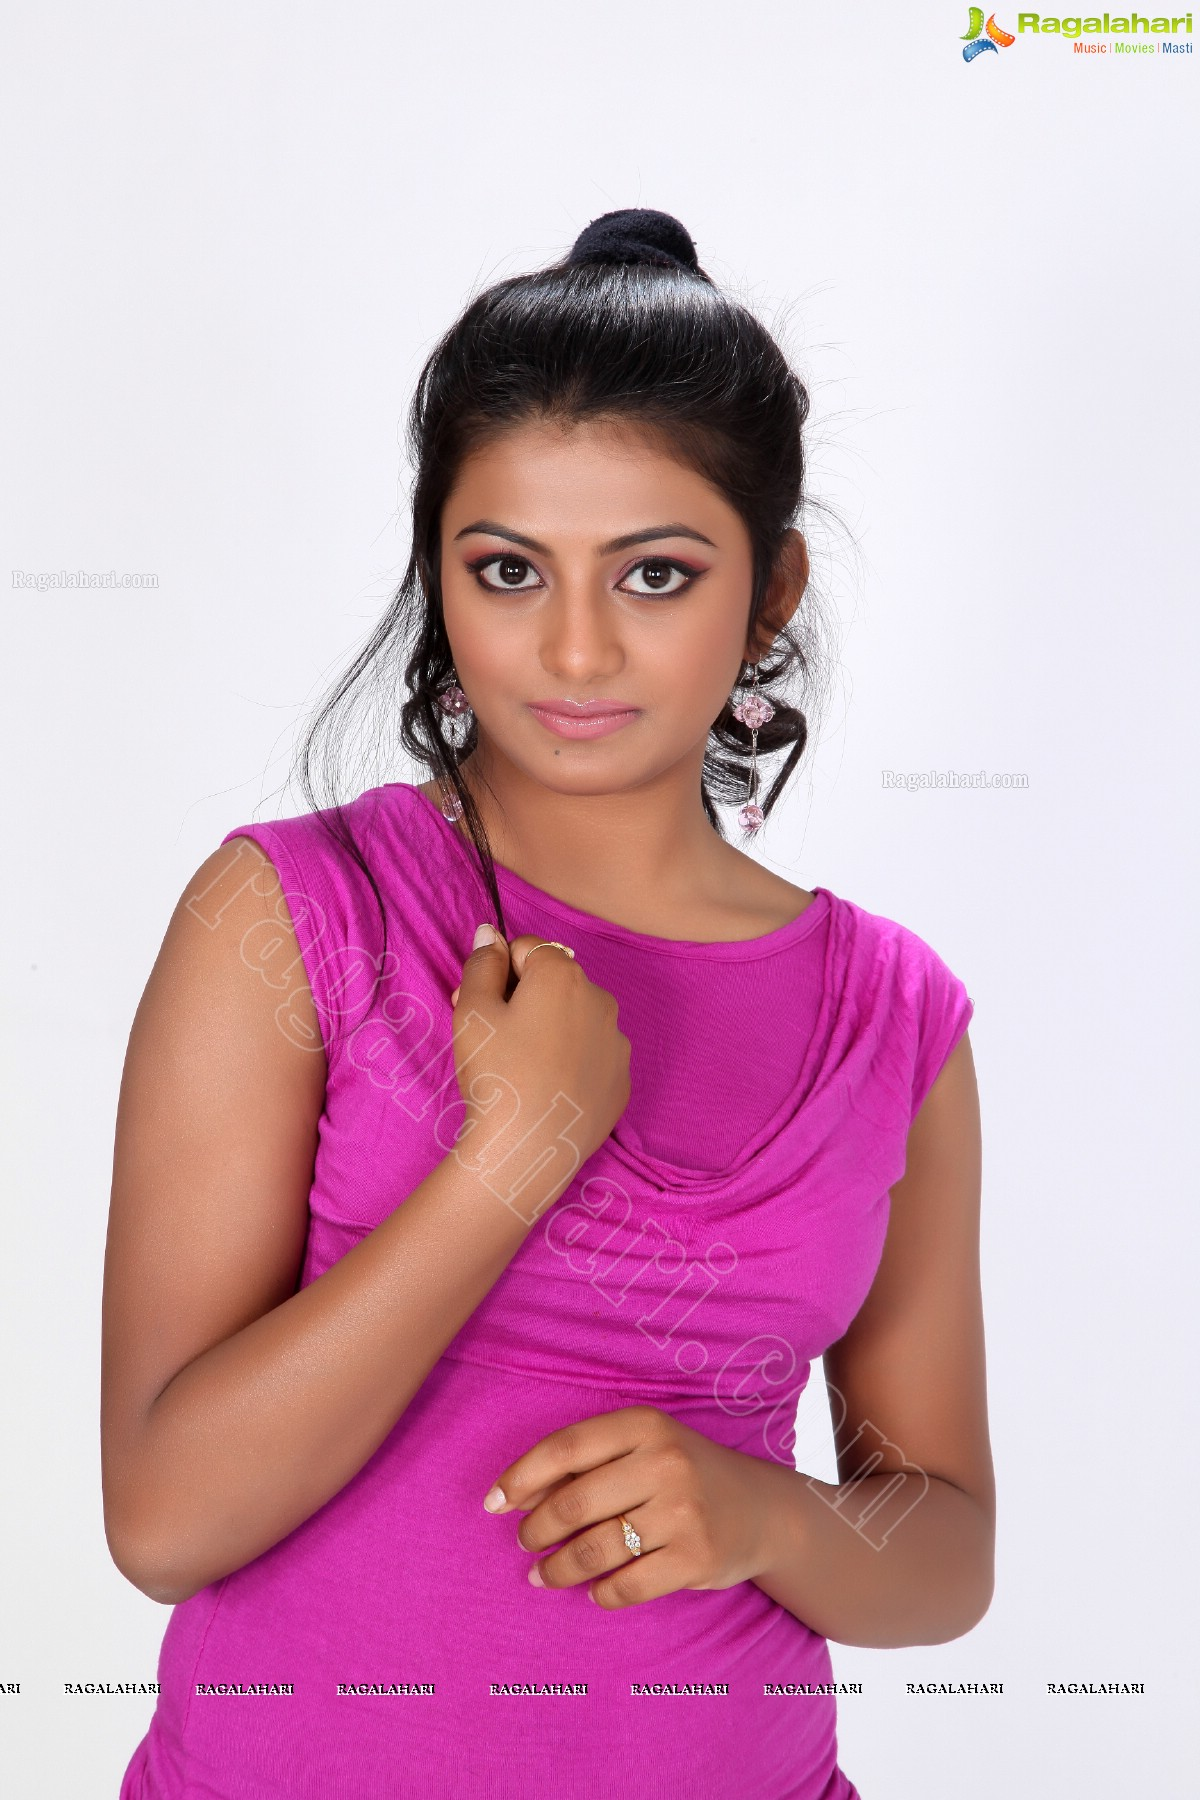 anandhi exclusive image 2 tollywood actor gallery images photos